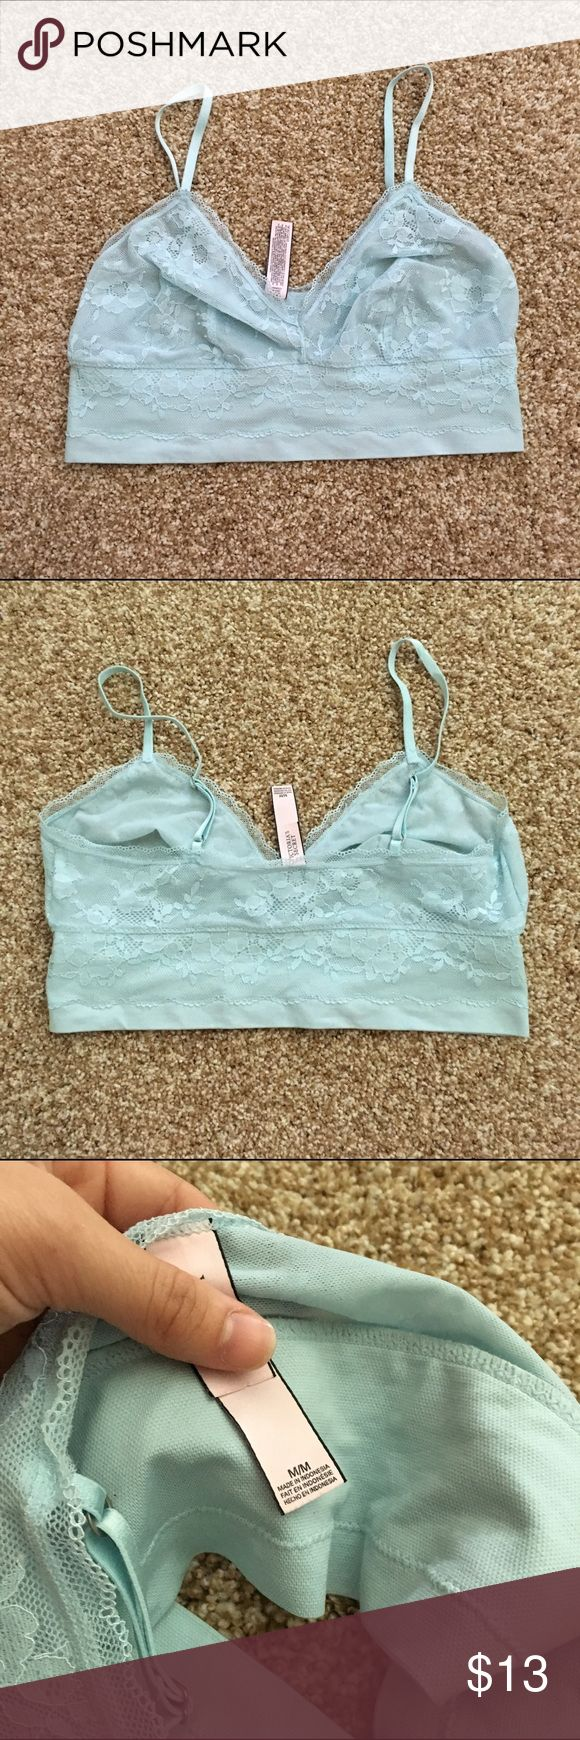 EUC M VS Lace bralette Size M. No flaws. Just too big on me! Nice blue color Make sure to check out all of my other VS listings if you'd like to bundle! Any questions just ask! Multiple items get big discounts! PLEASE NO LOWEST! Smoke free but pet friendly! (There might be some stray cat hair even though I always lint roll before sending things out!) Check out my closet for more great/cheap items! :) Victoria's Secret Intimates & Sleepwear Bras